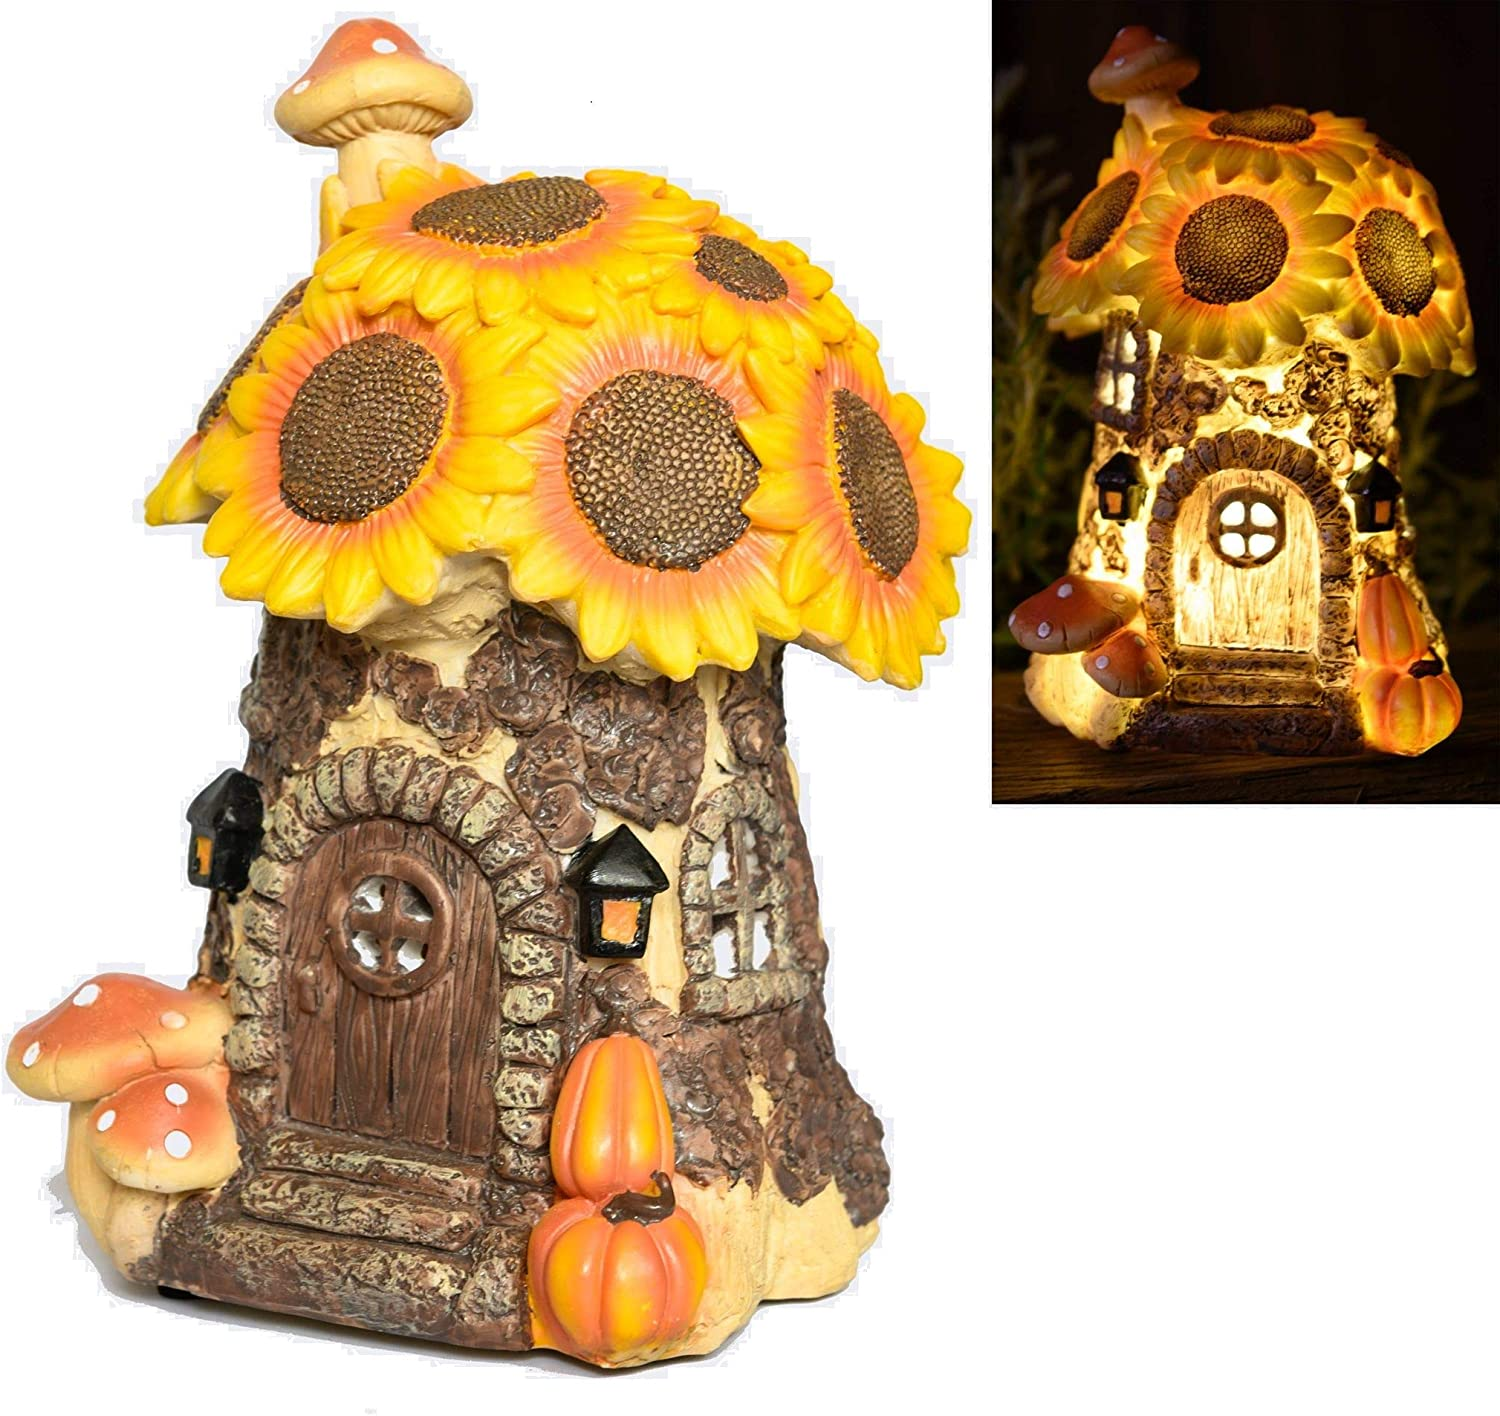 HV Hall View Products Hand Painted Fairy Garden House, Sunflower Toadstool and Pumpkin Style with Solar Powered Led Illumination